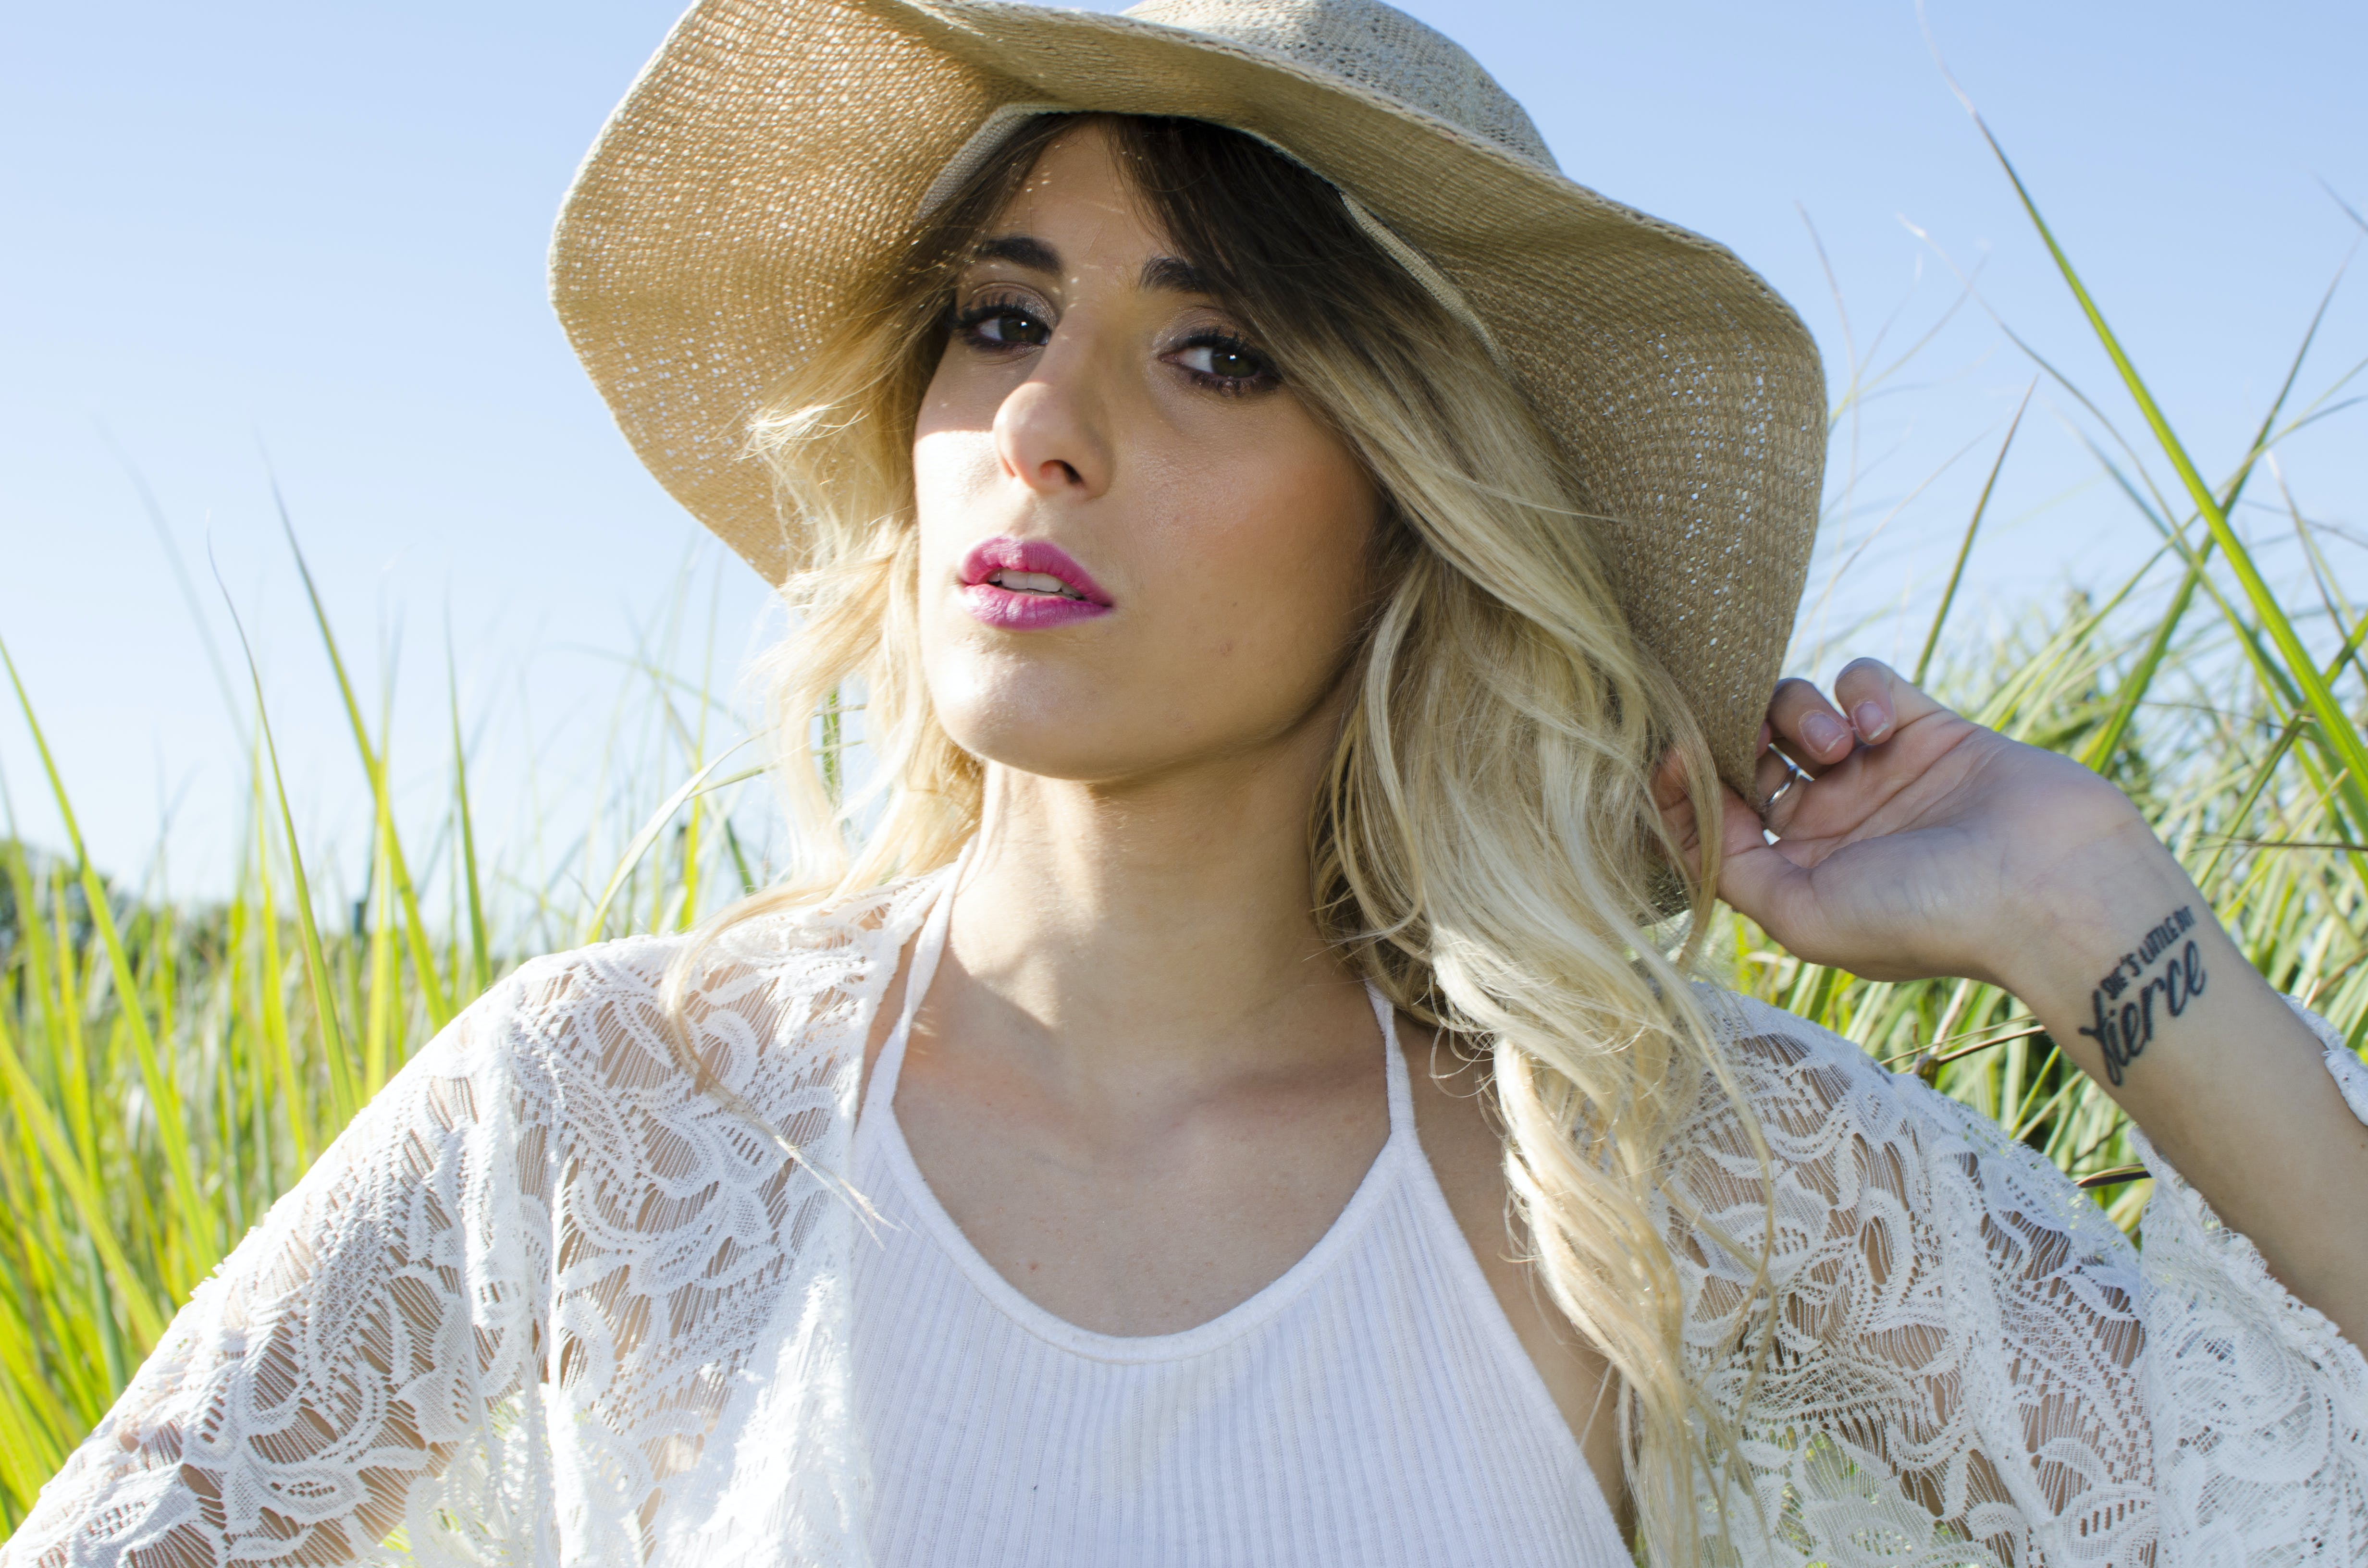 Woman Wearing Brown Hat and White Cardigan Standing in Middle of Grass Field